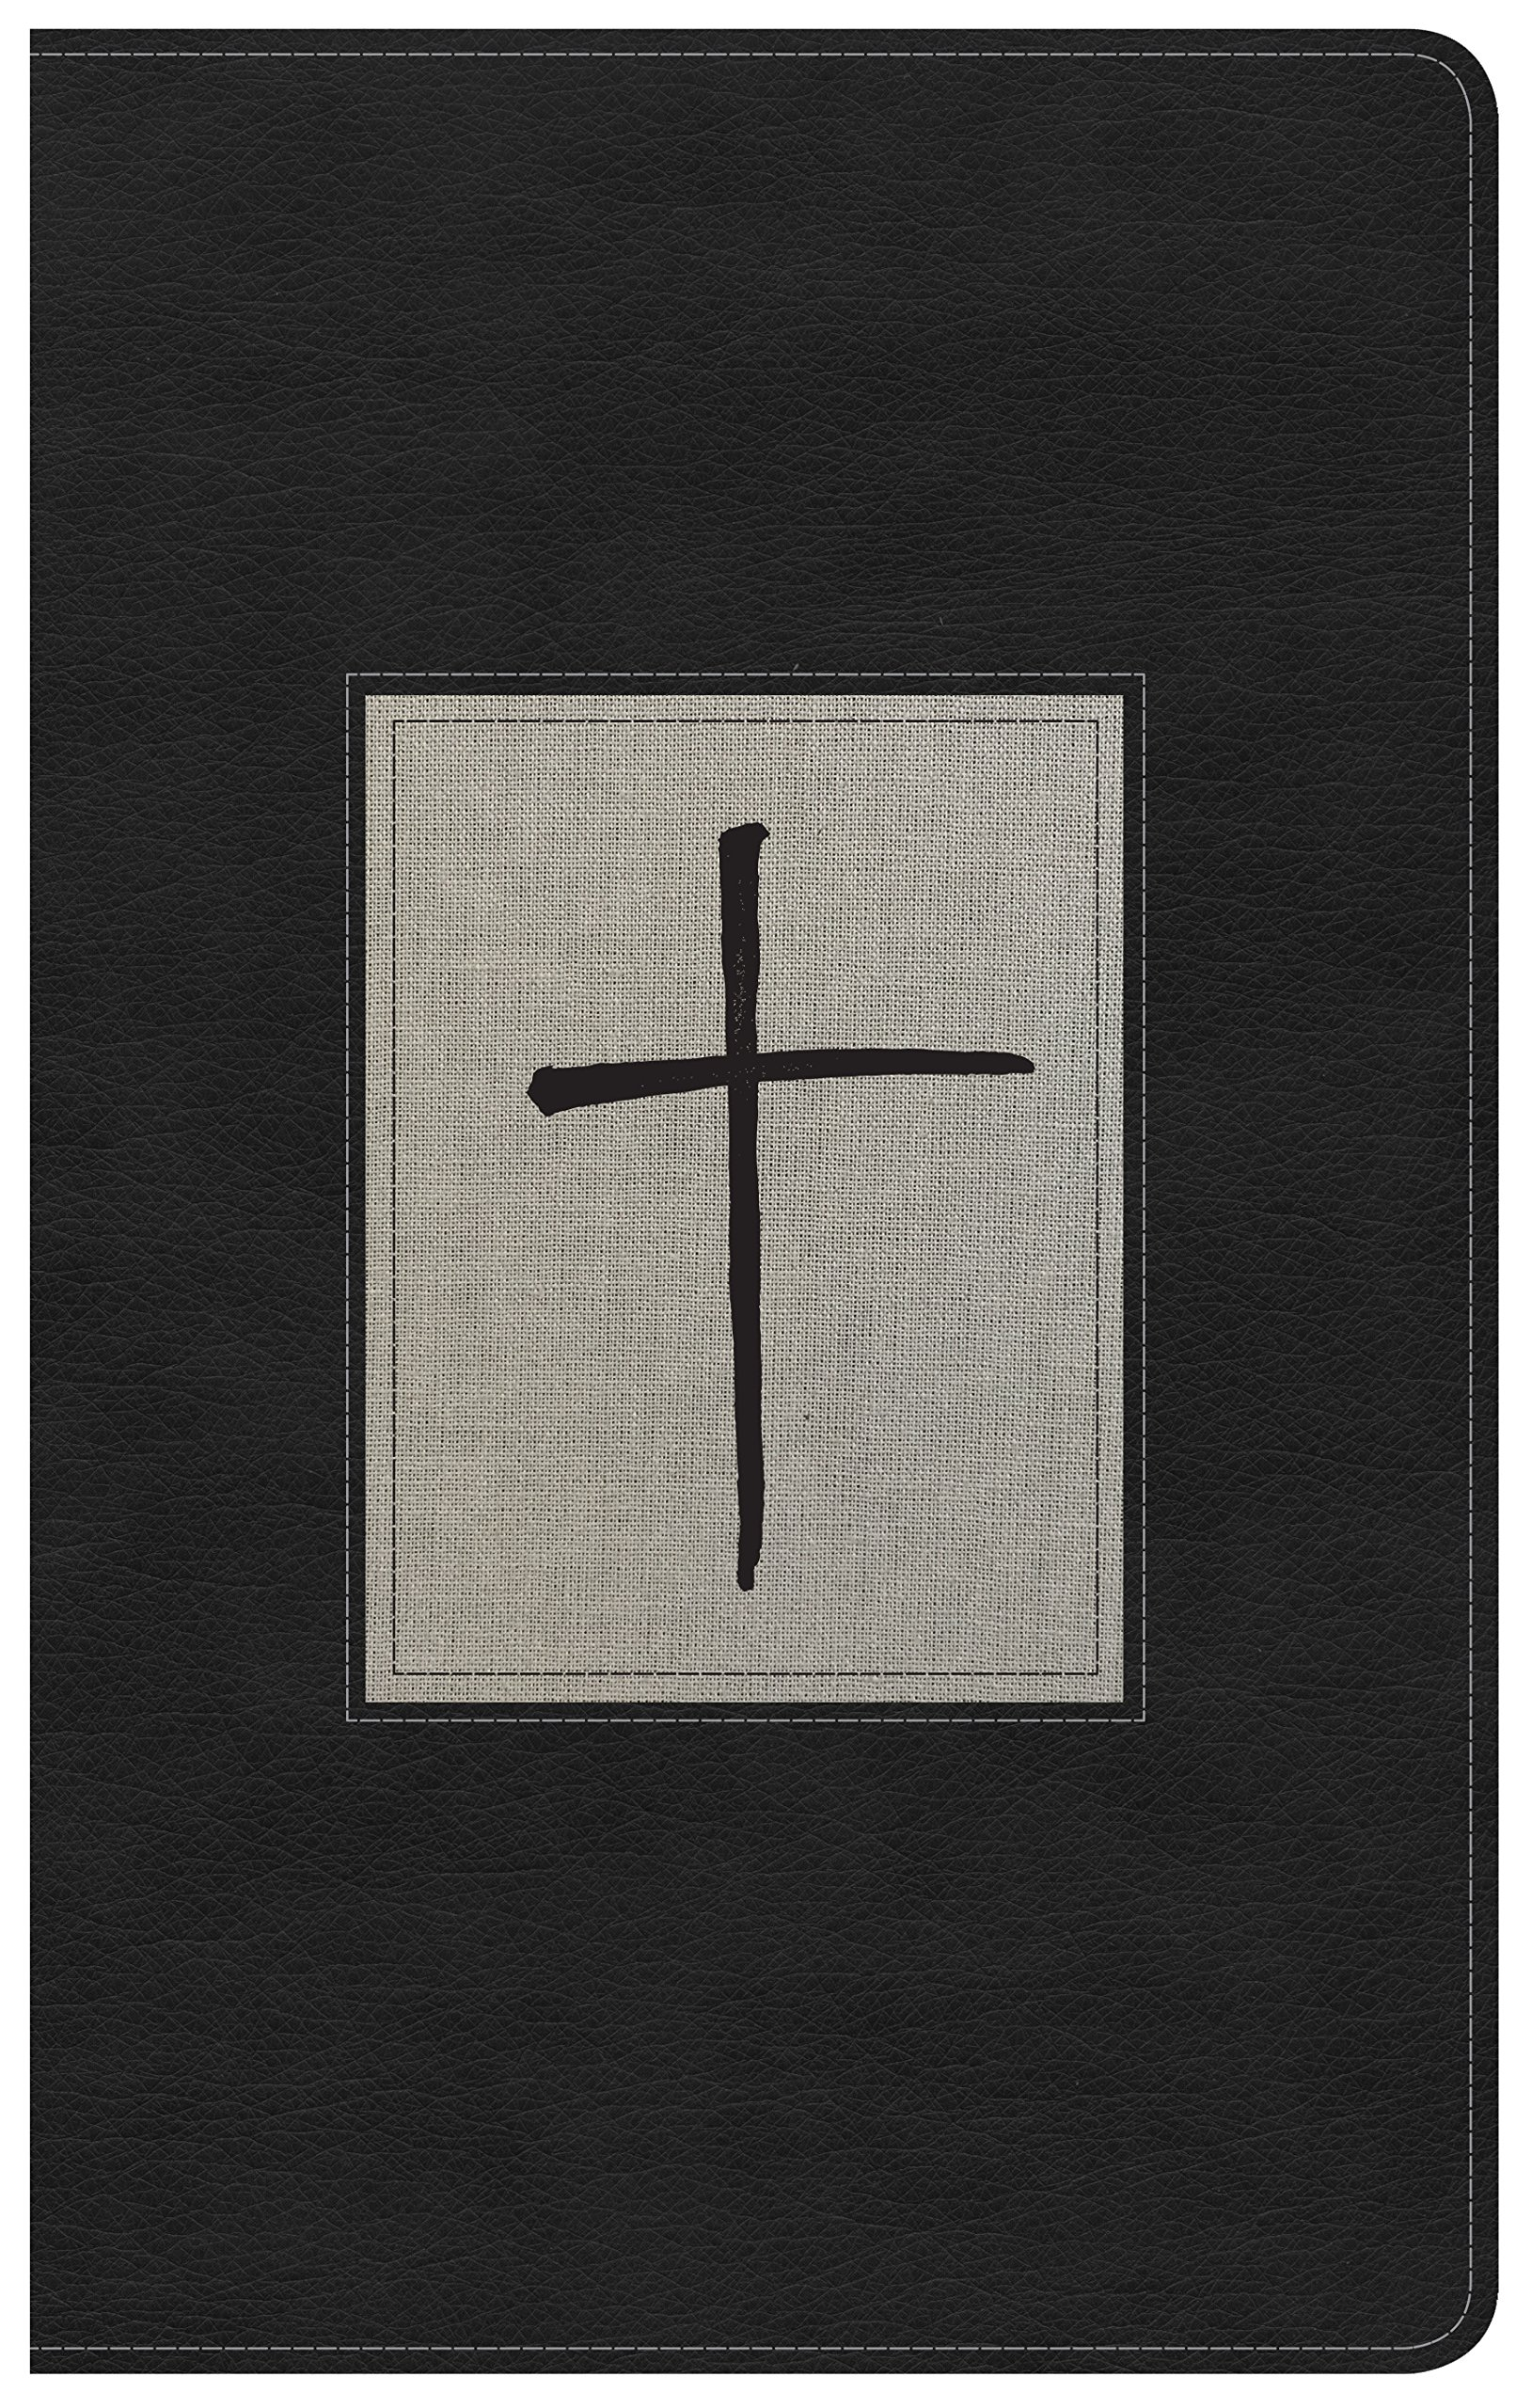 Download NKJV Ultrathin Reference Bible, Black/Gray Deluxe LeatherTouch, Indexed ebook